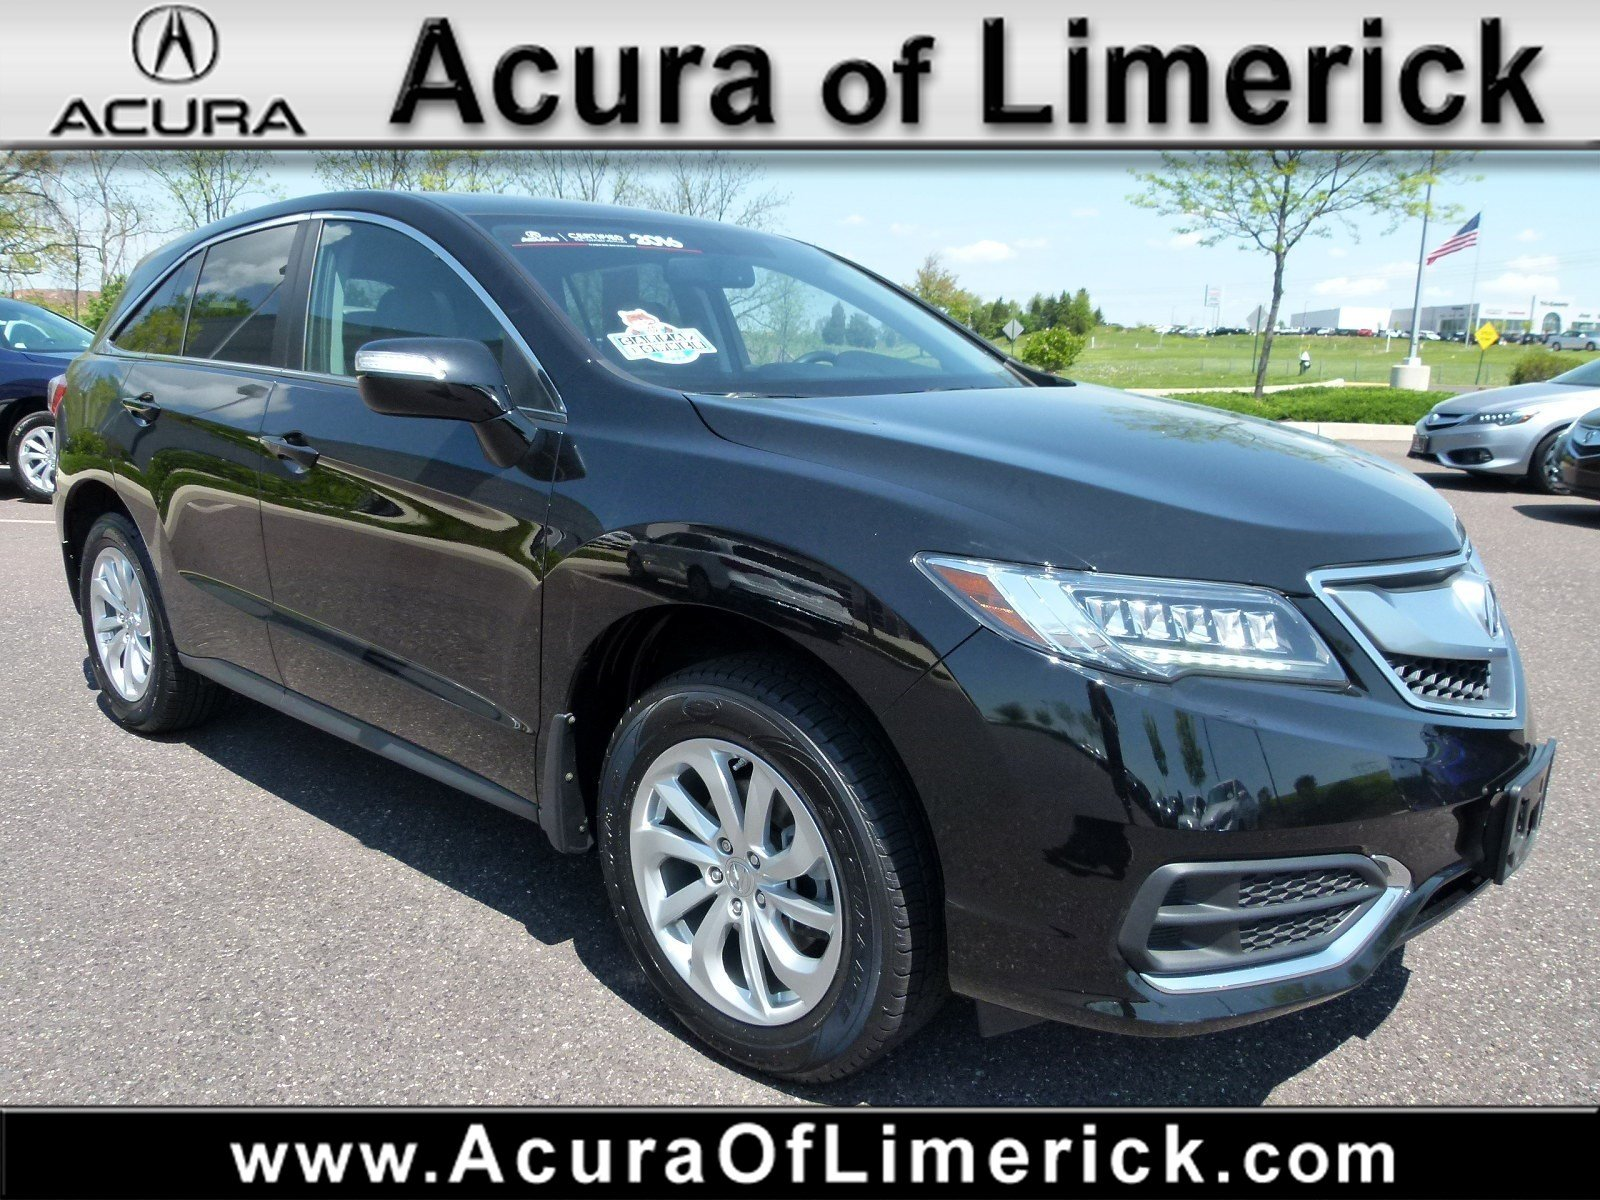 Certified Pre Owned 2016 Acura RDX AWD Sport Utility in Limerick